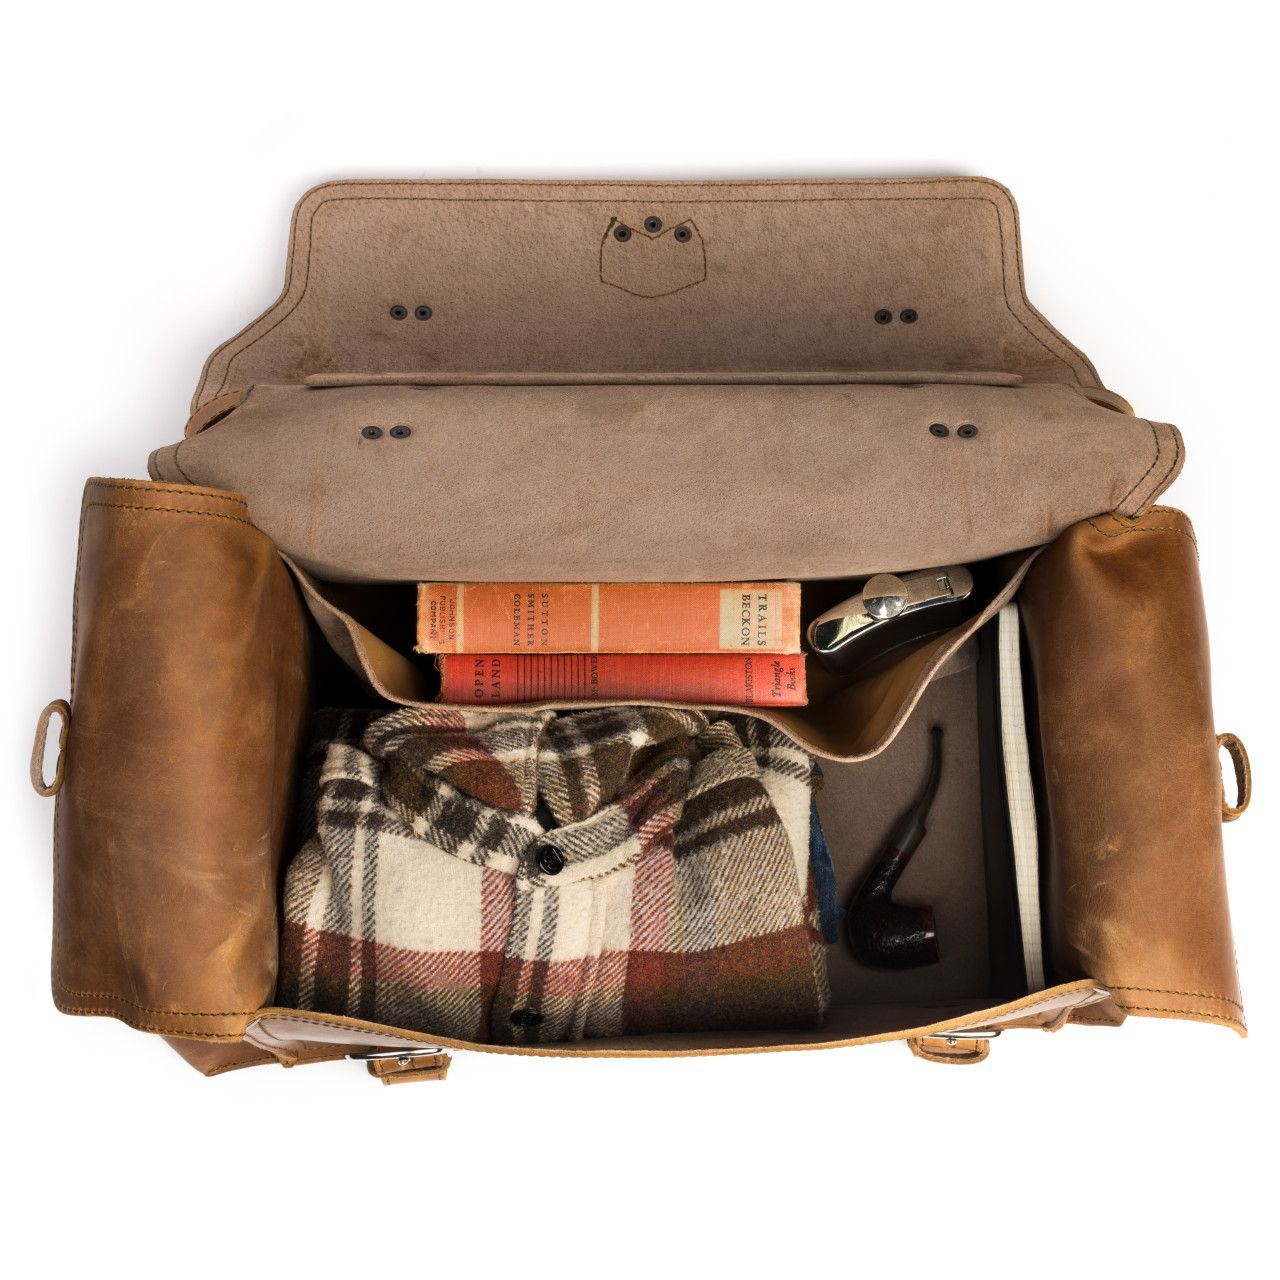 side pocket leather duffel bag large in tobacco leather with books, a shirt and a pipe in the interior